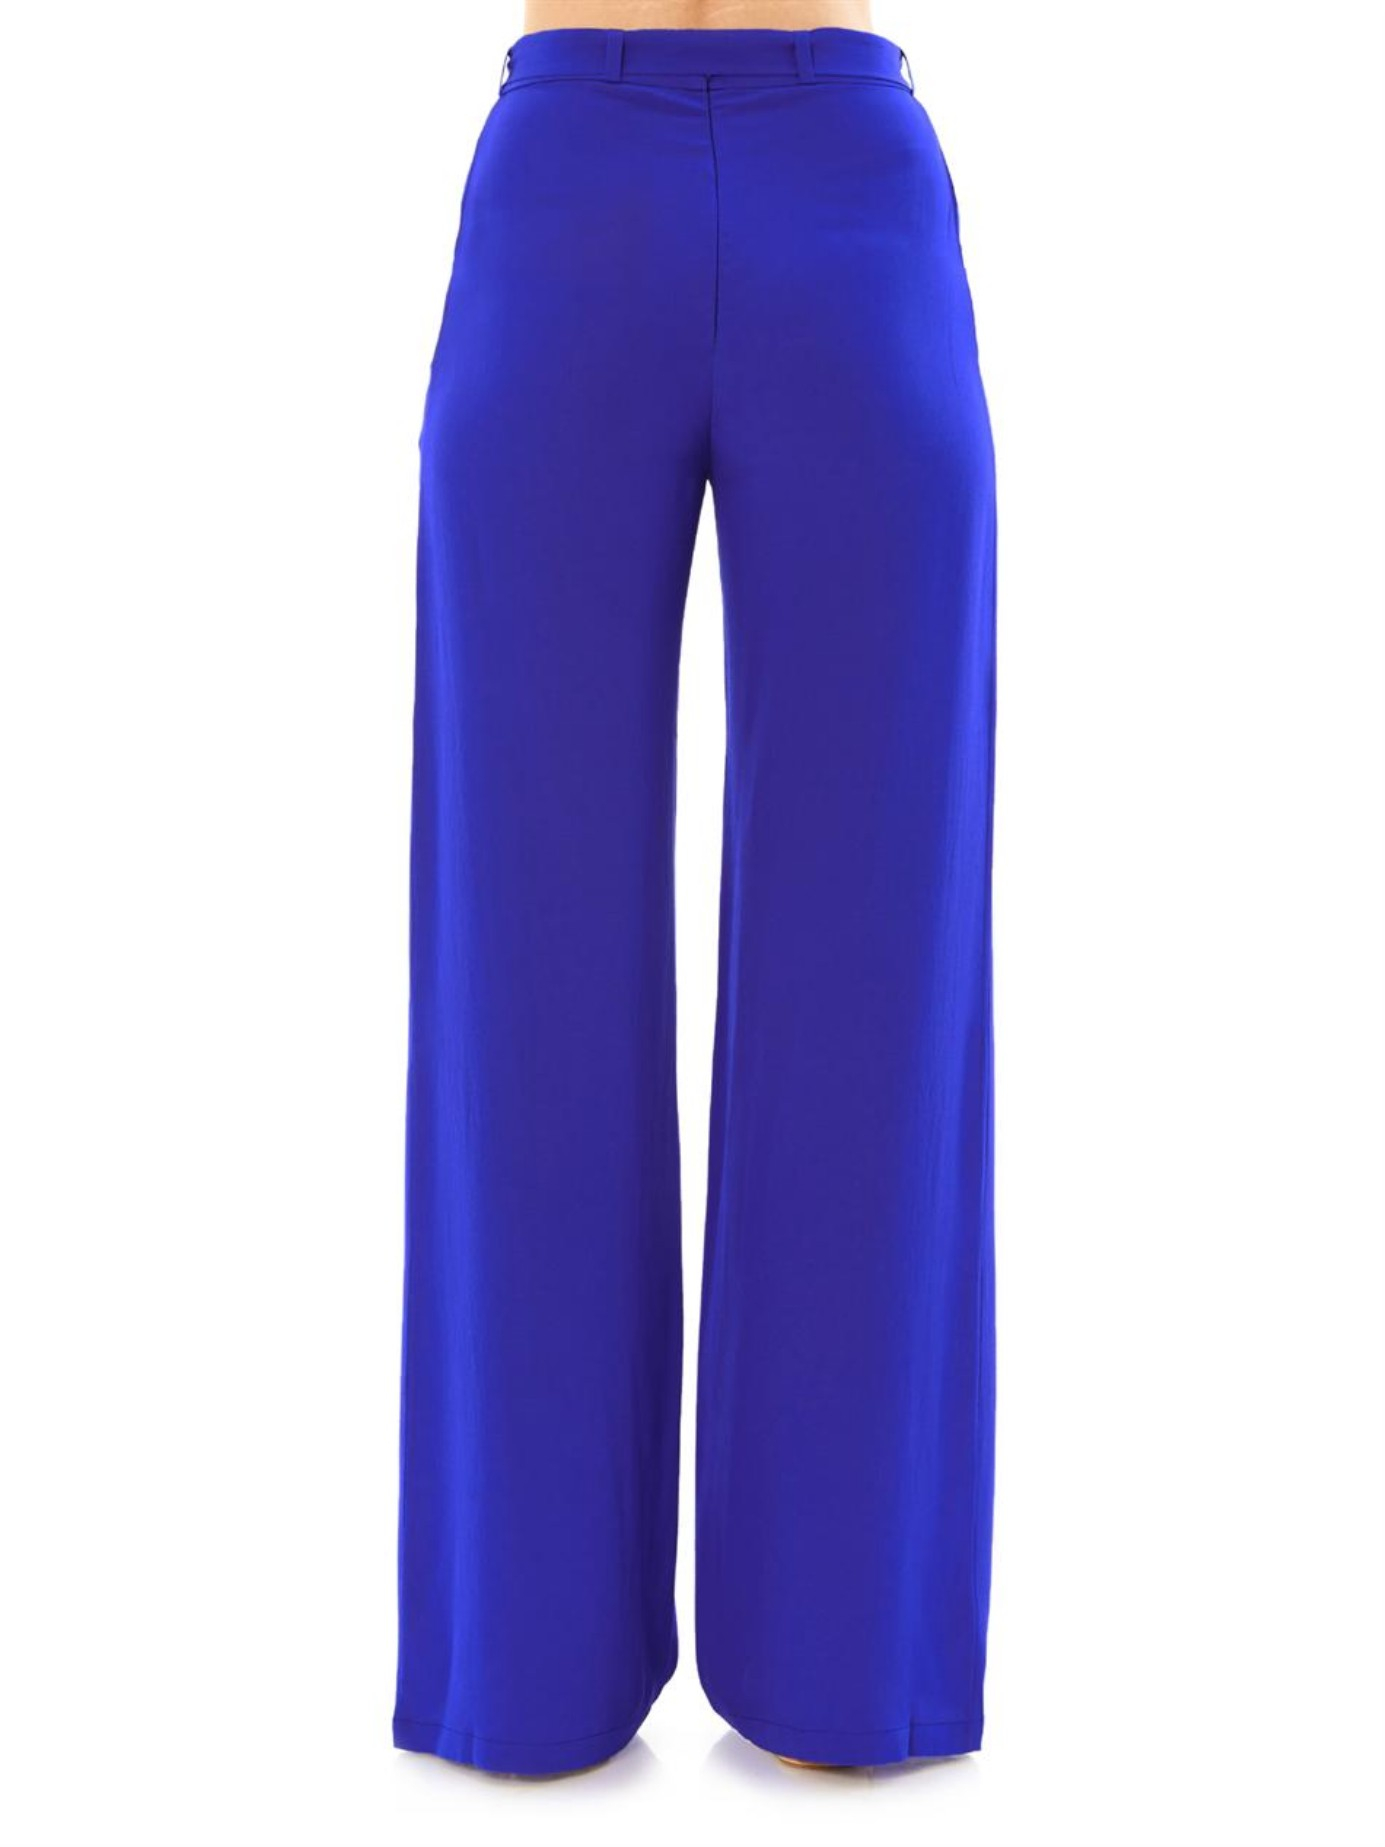 FREE SHIPPING AVAILABLE! Shop mediacrucialxa.cf and save on Wide Leg Pants.